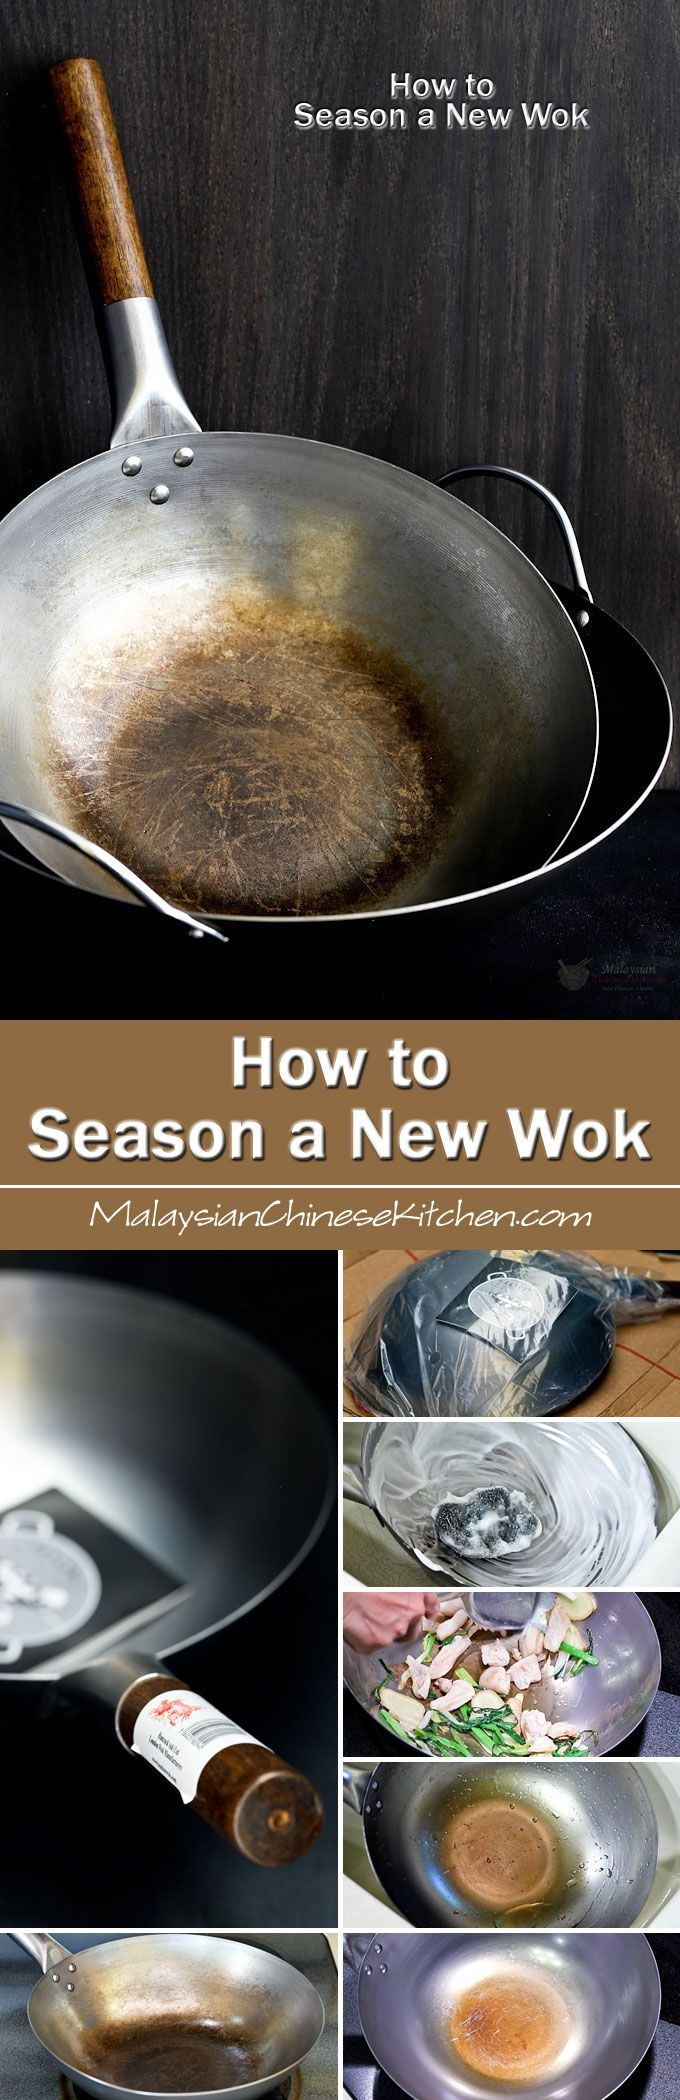 How to Season a New Wok using lard and aromatic herbs and vegetables. High smoking point oil may be used as a substitute. | MalaysianChineseKitchen.com